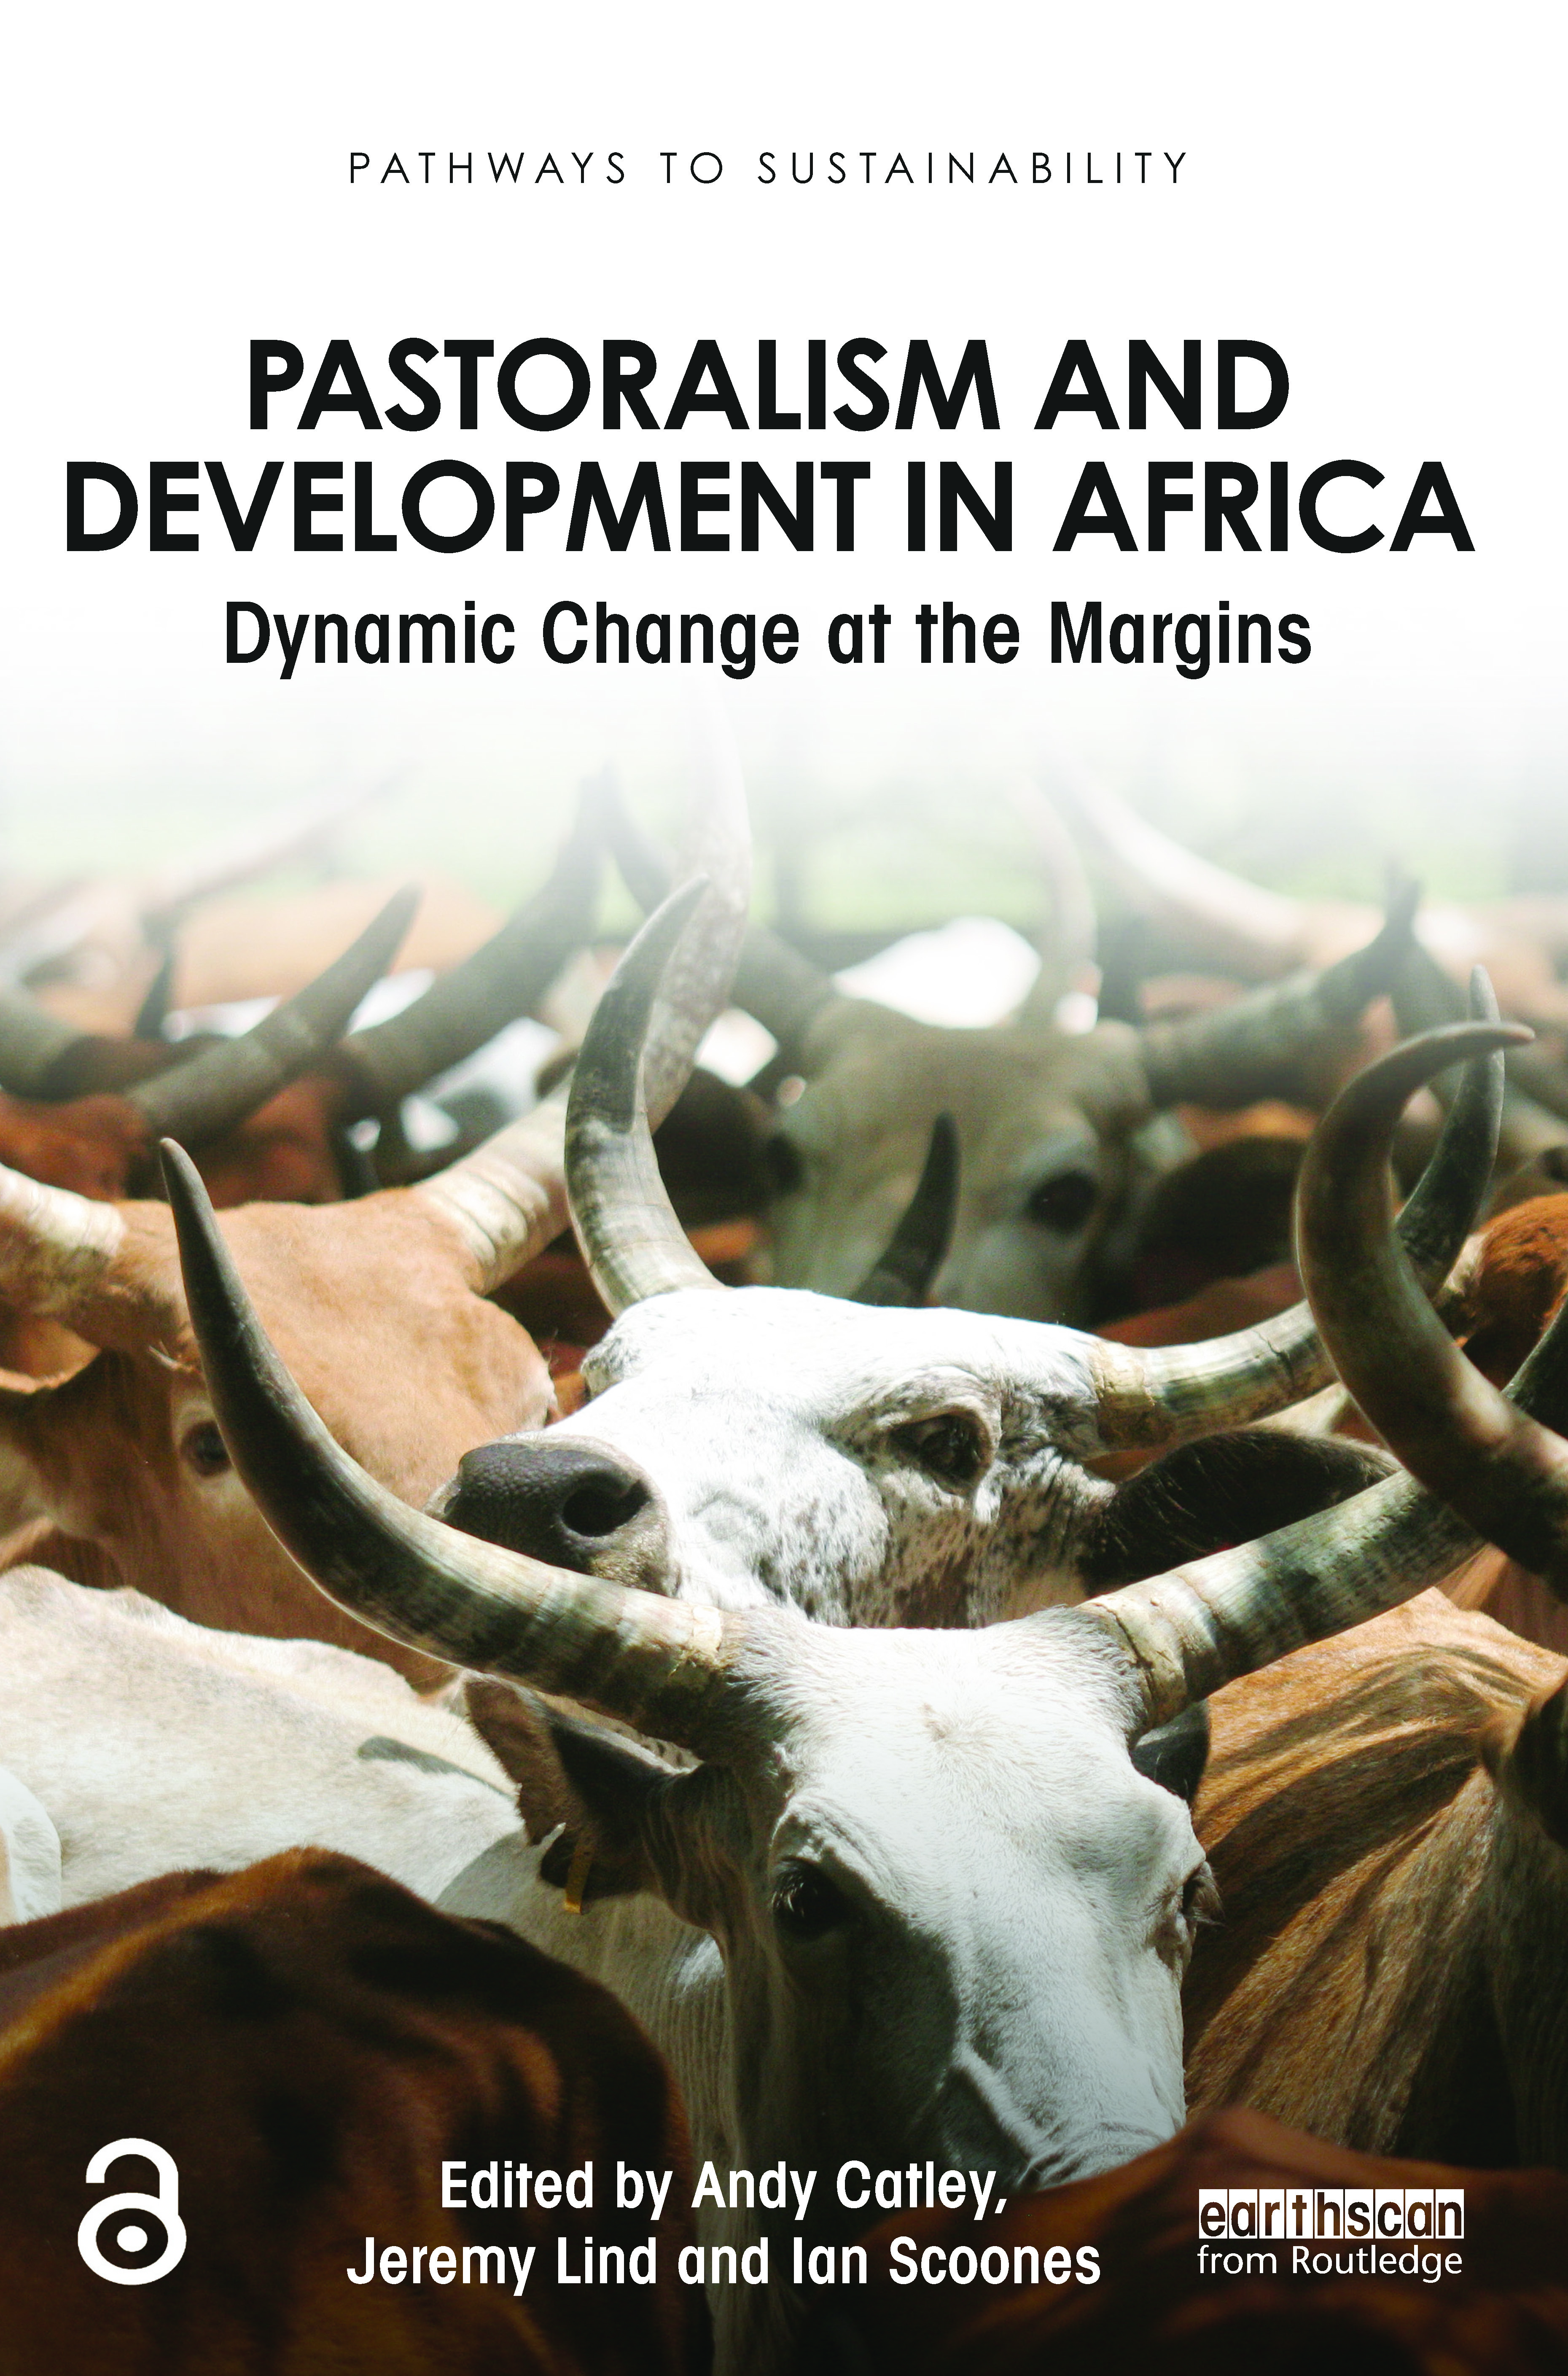 Pastoralism and Development in Africa: Dynamic Change at the Margins book cover